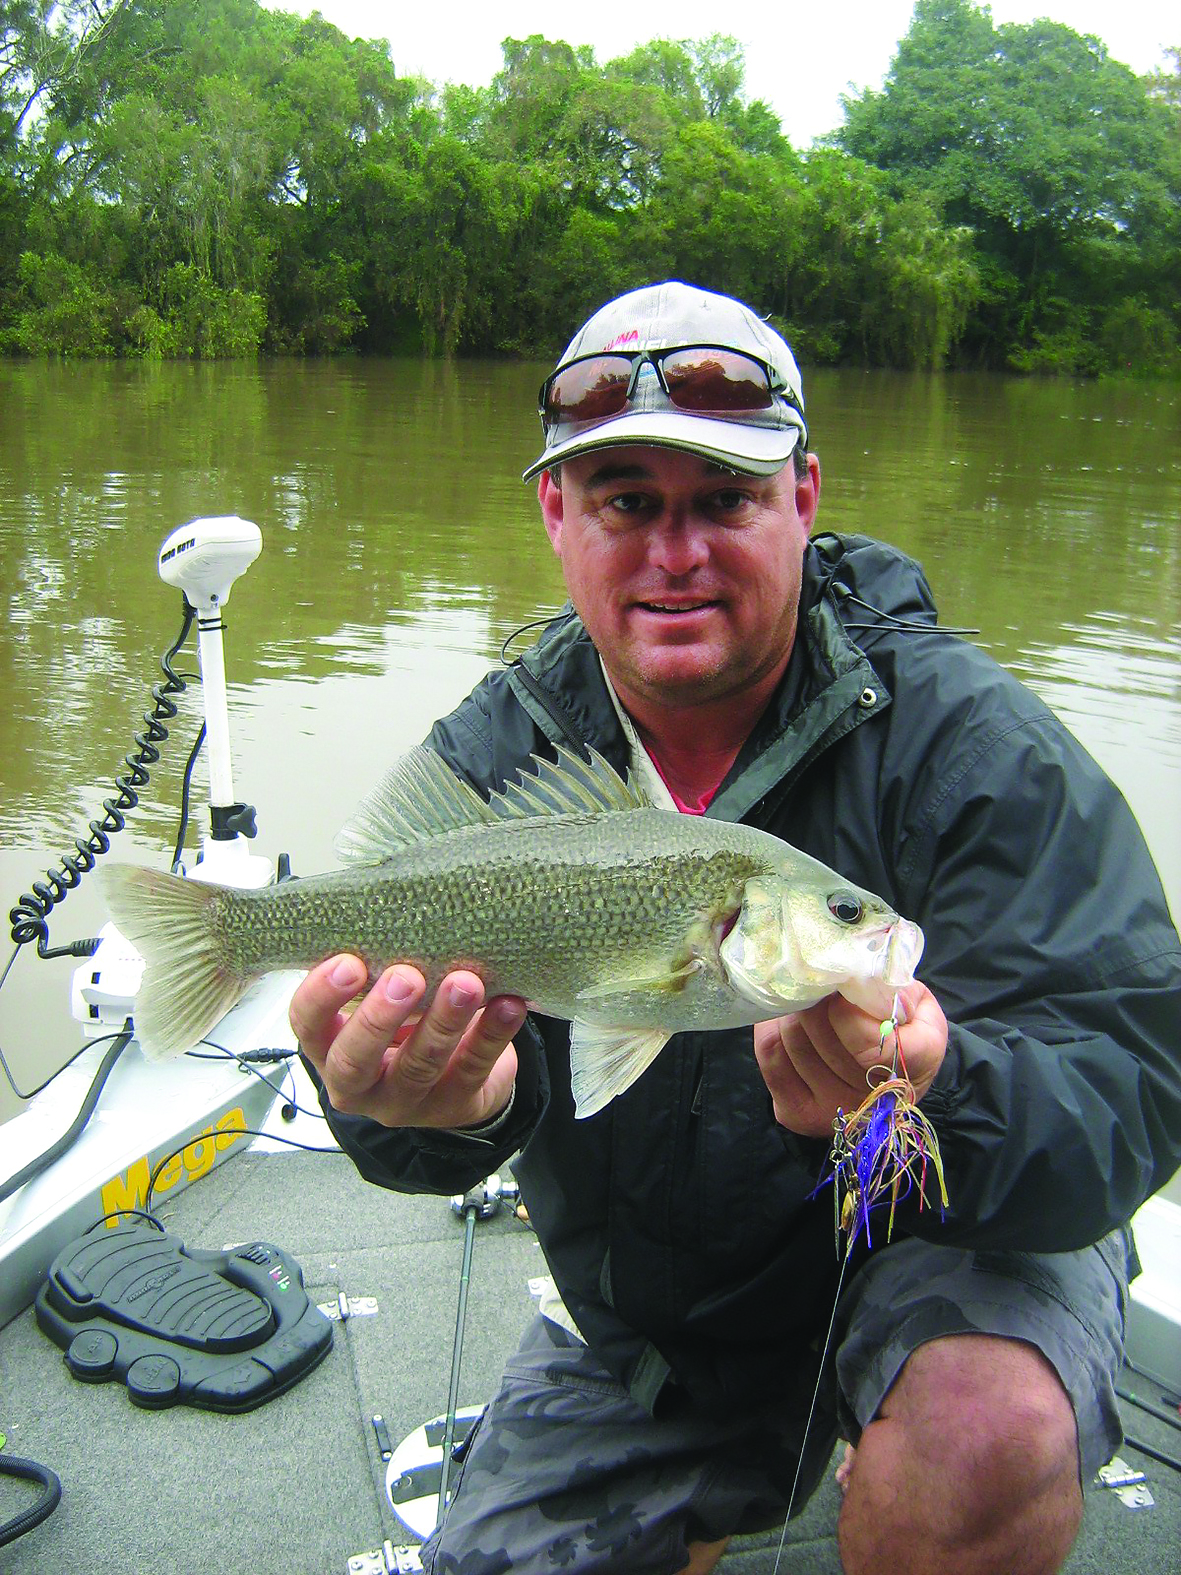 Adrian Melchoir landed a Richmond River bass on a Bassman Spinnerbait.